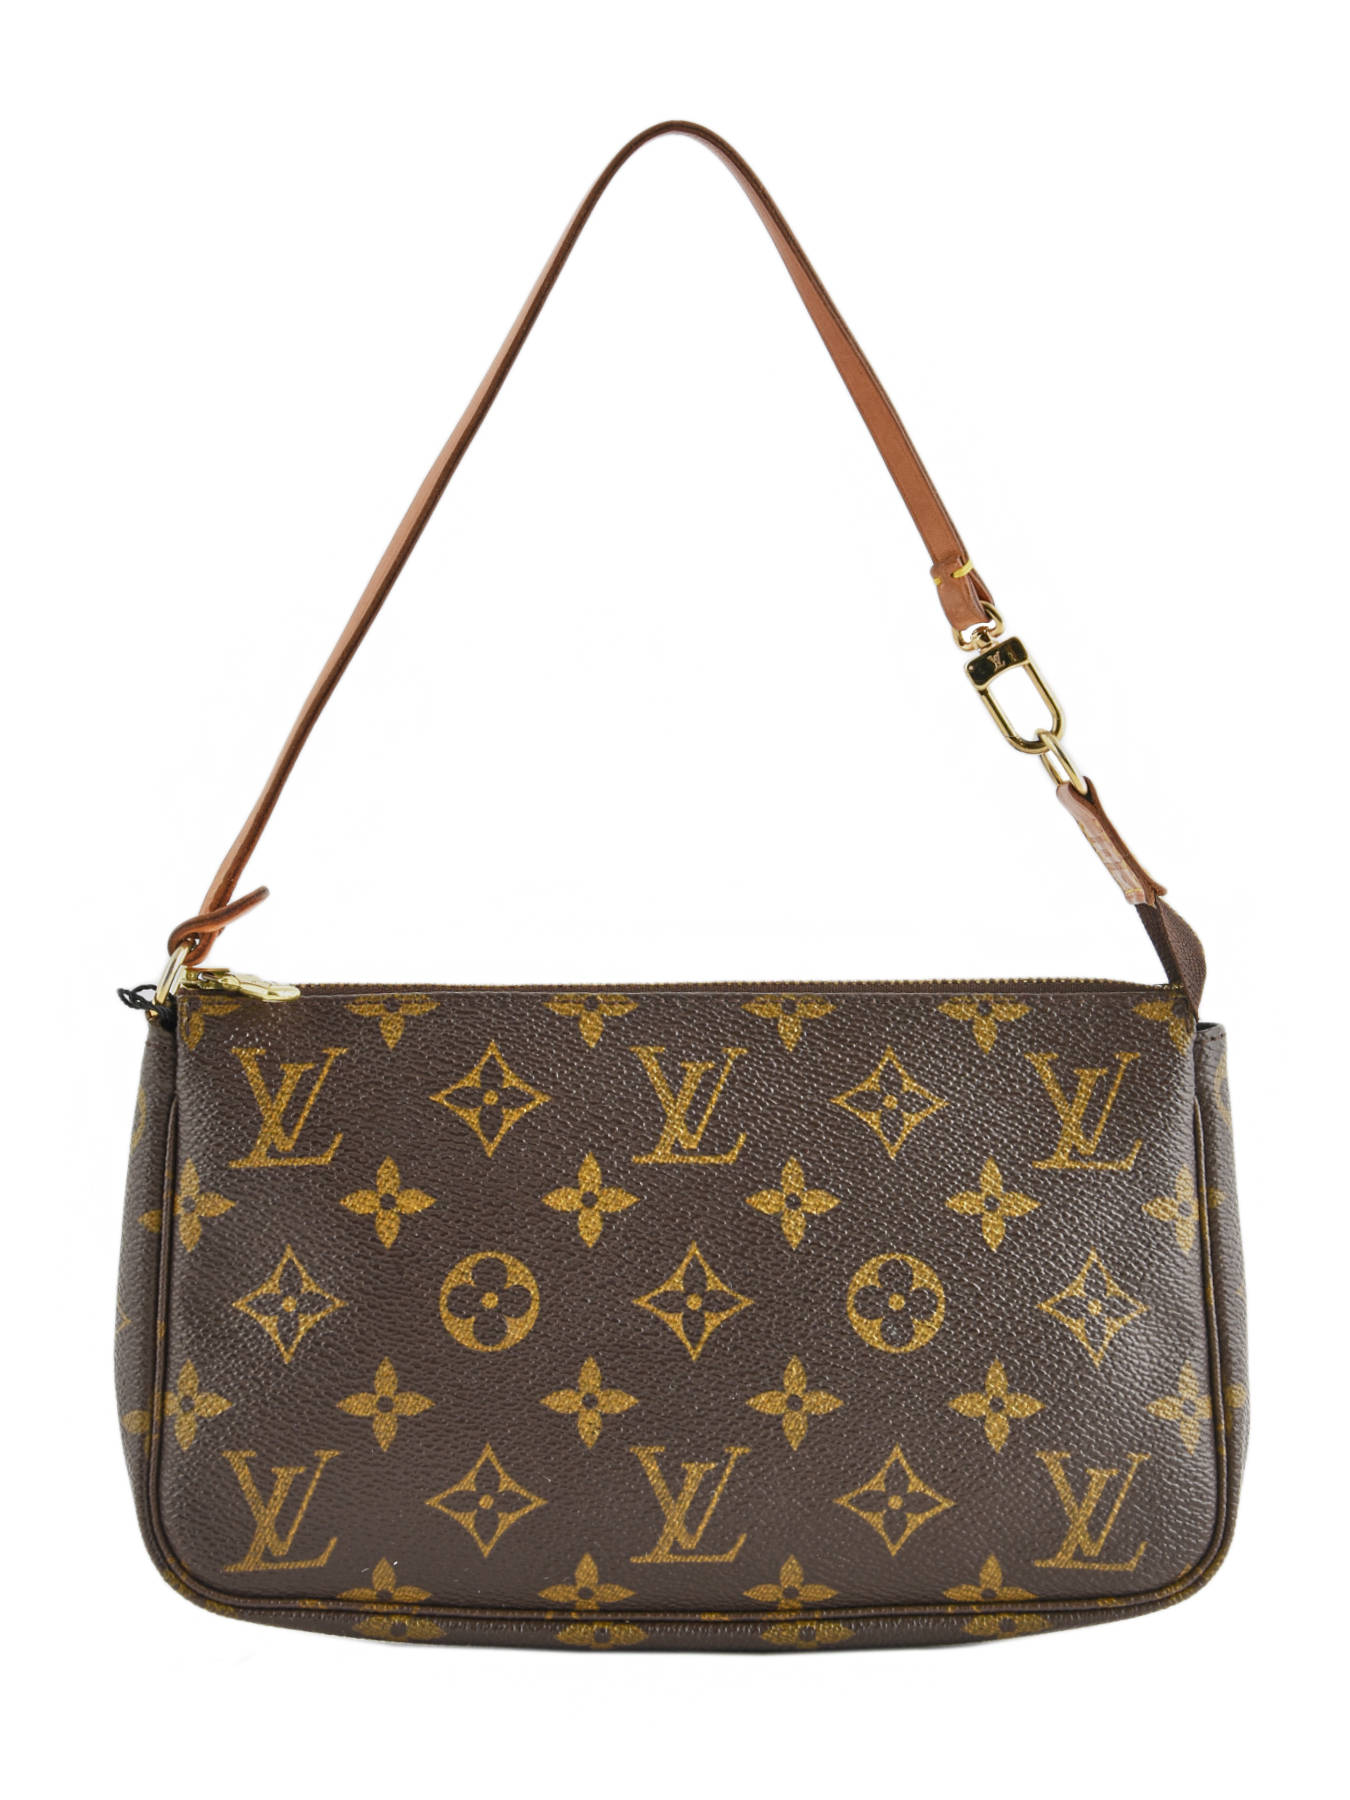 c674b576b4a7 ... Mini-sac D occasion Louis Vuitton Pouch Monogrammé Brand connection  Marron louis vuitton ...